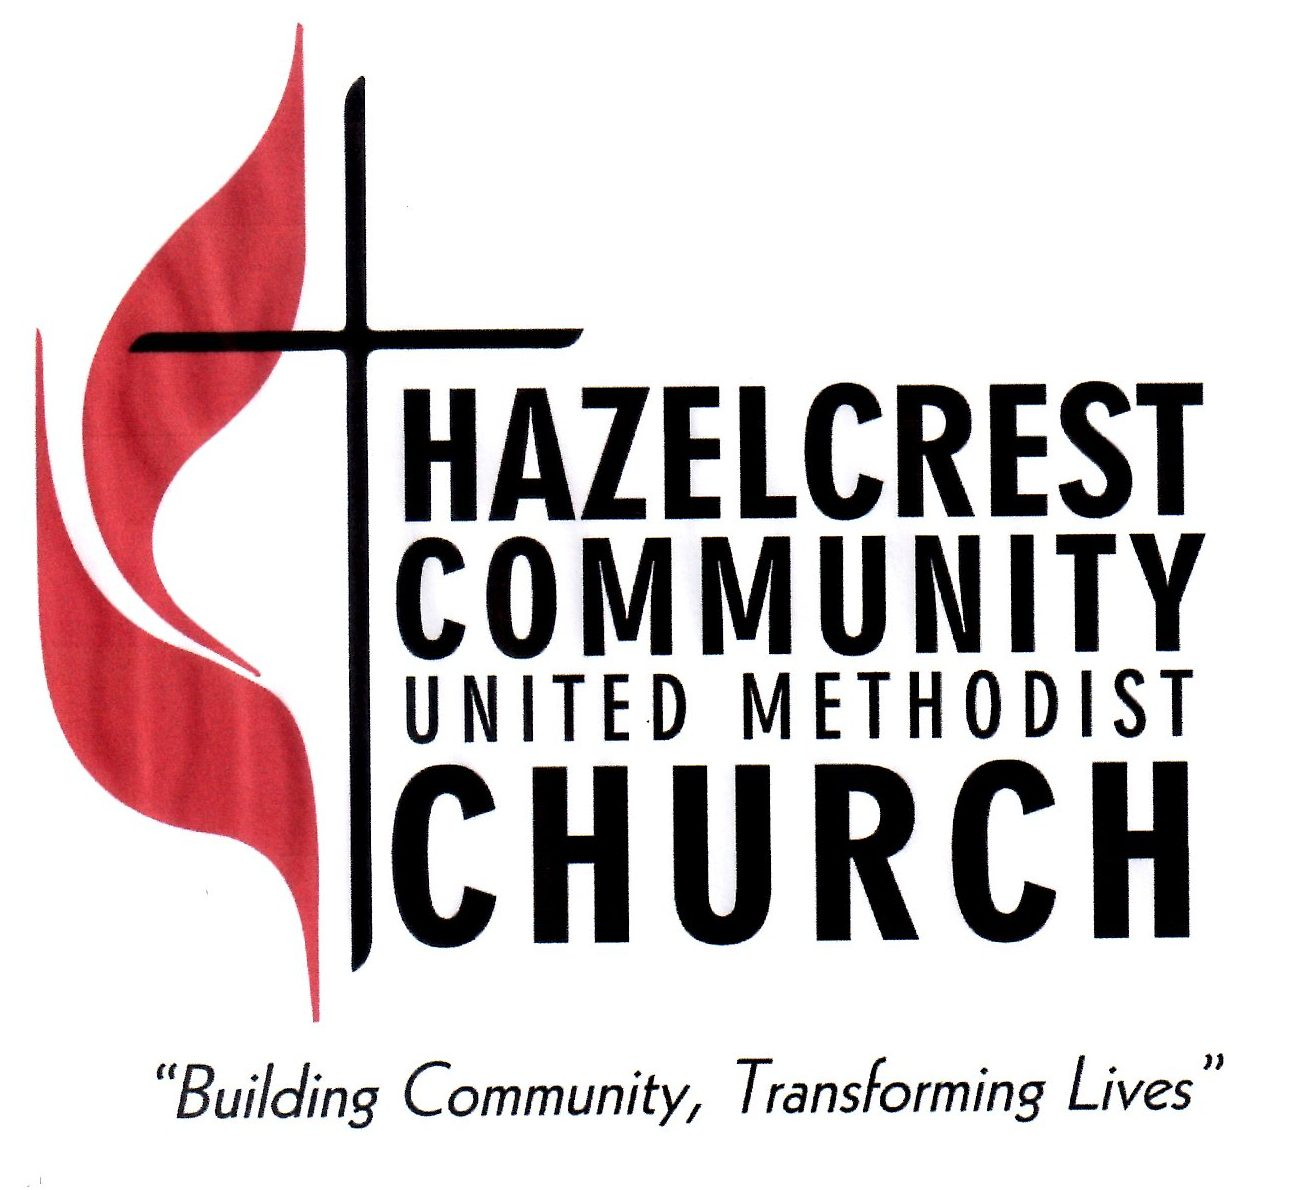 Hazel Crest Community United Methodist Church